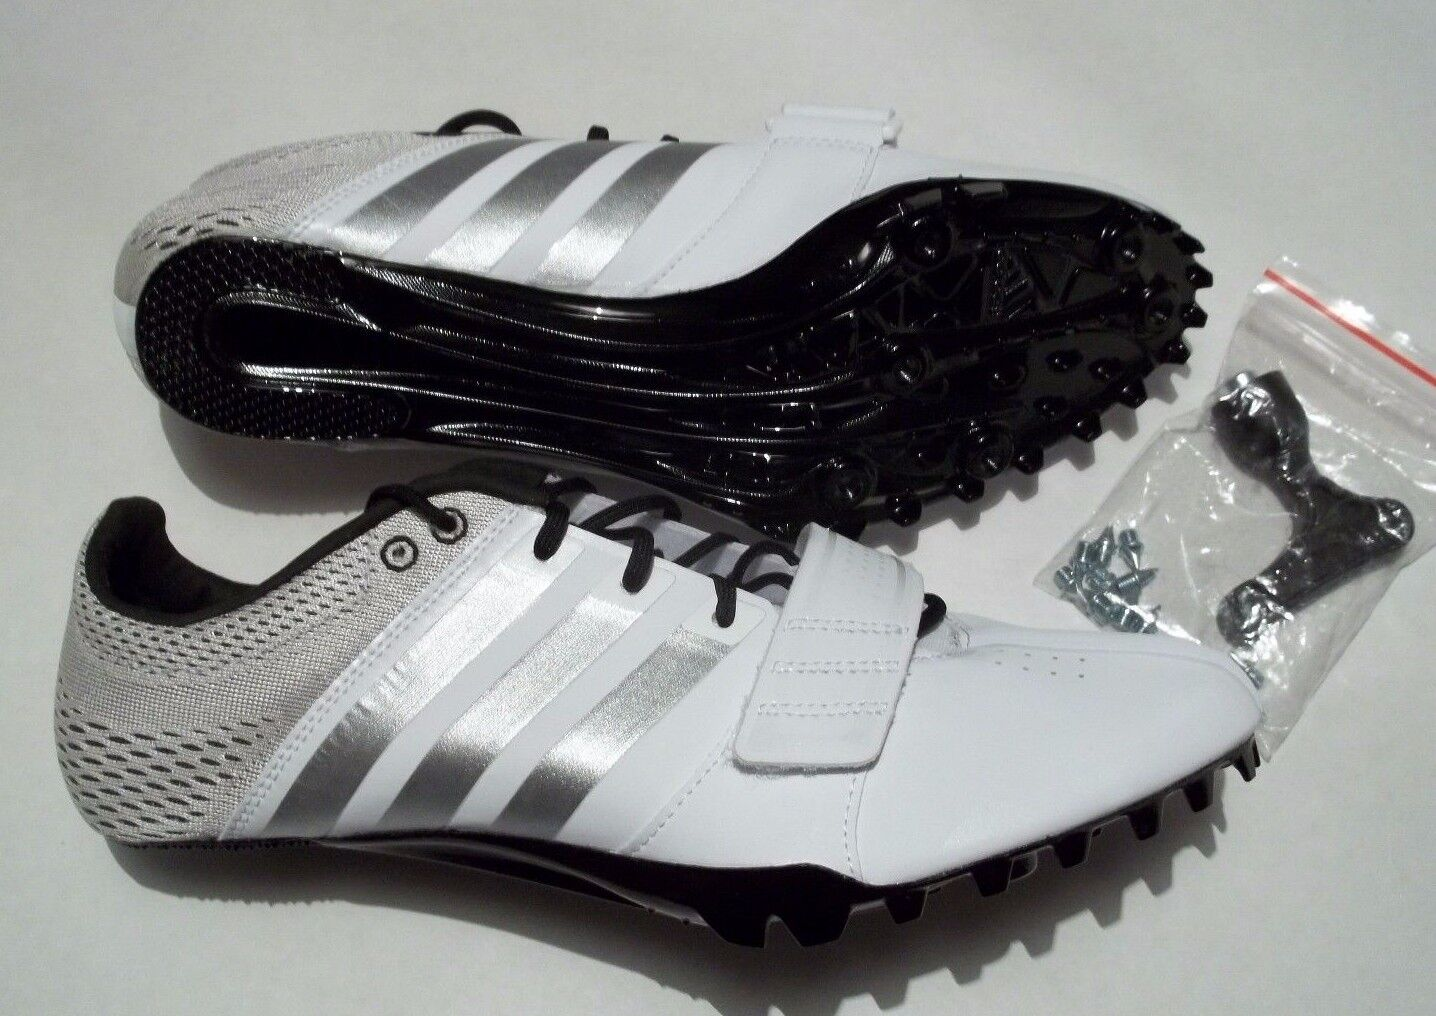 NEW Adidas Prime Accelerator Size 11.5 Track Shoes With Spikes & Tool  S80336